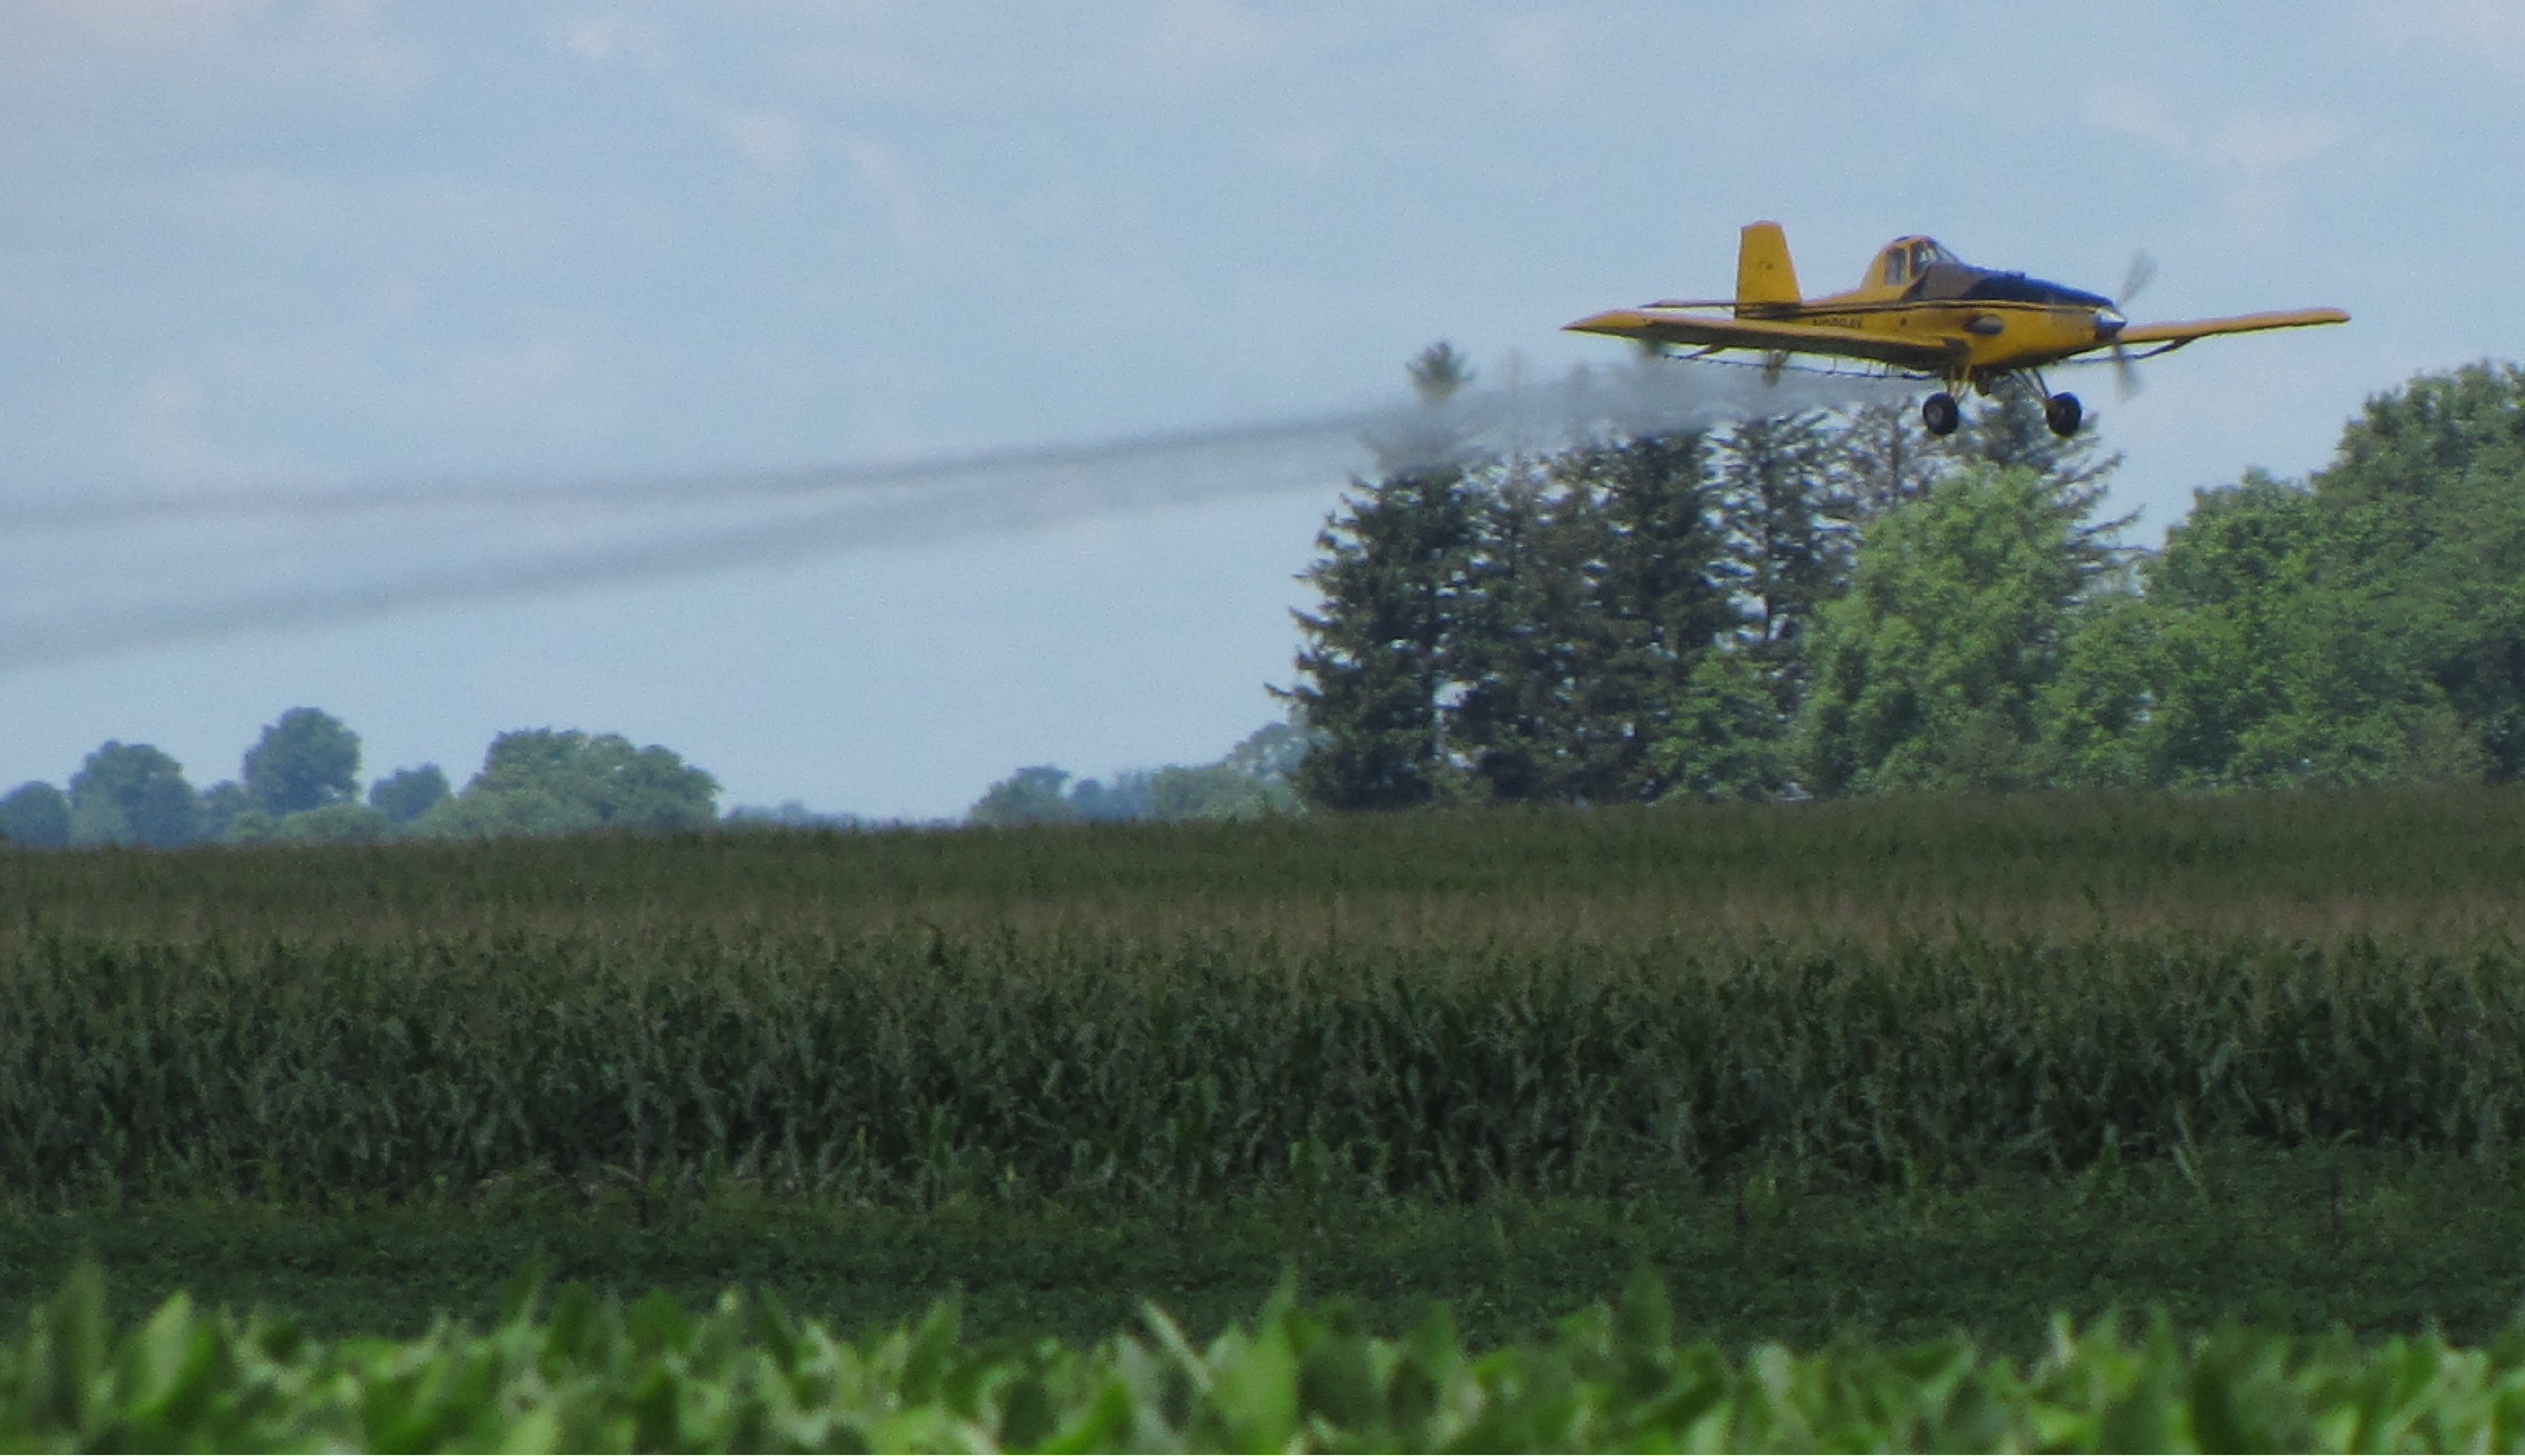 understudied fungicides common in us streams draining